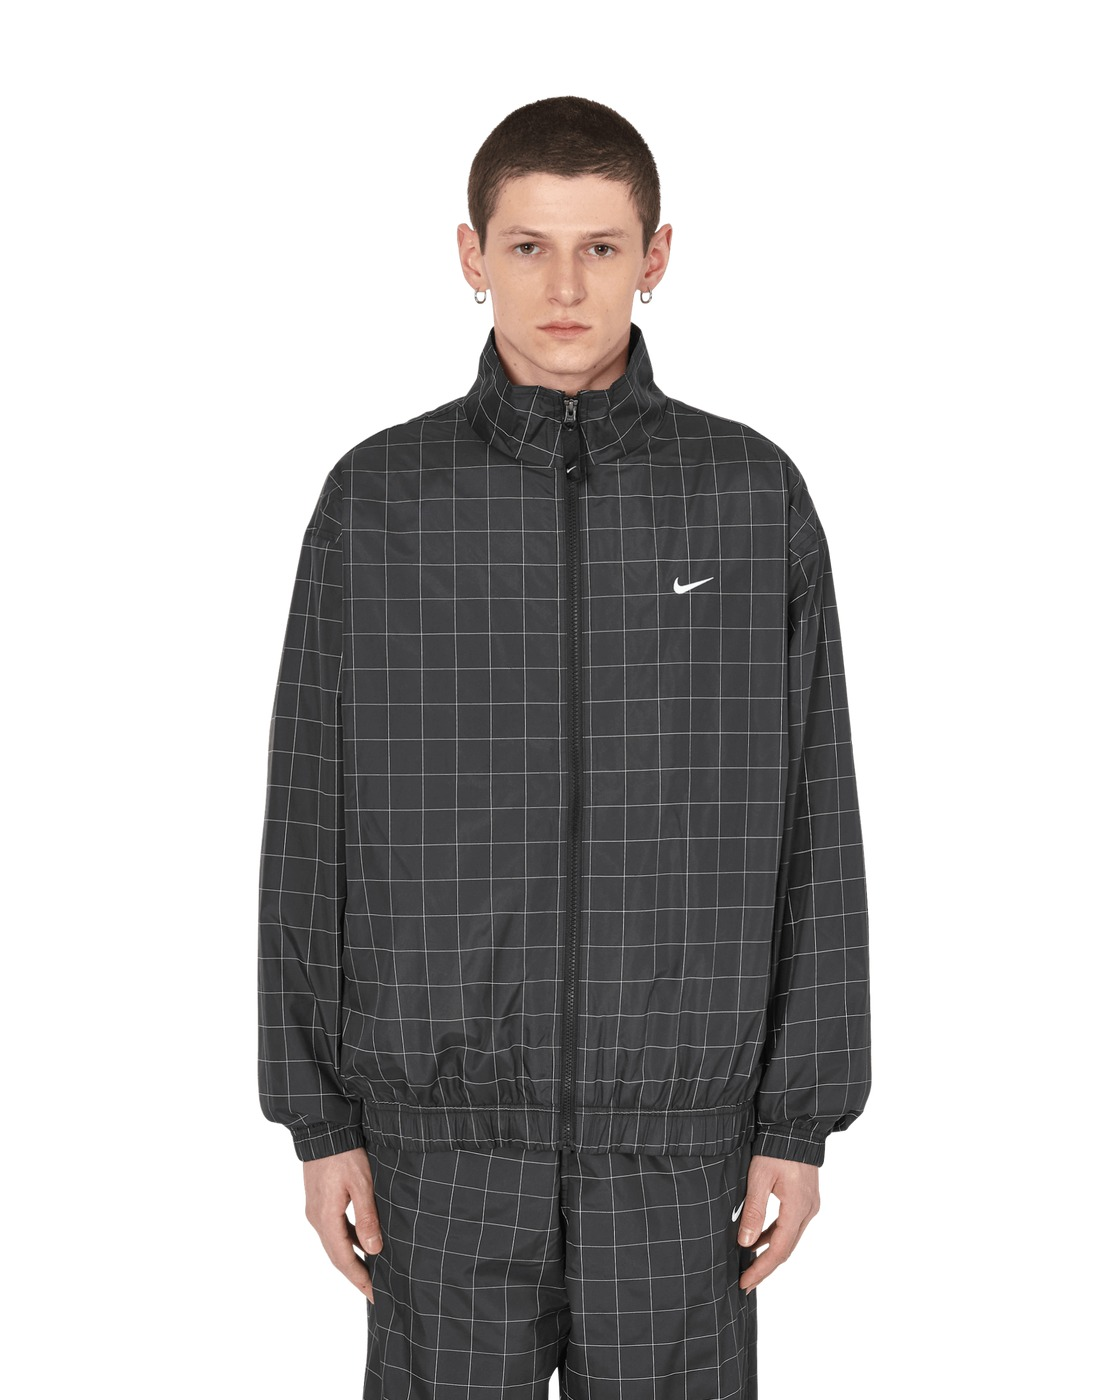 Nike Special Project Flash Track Jacket Black